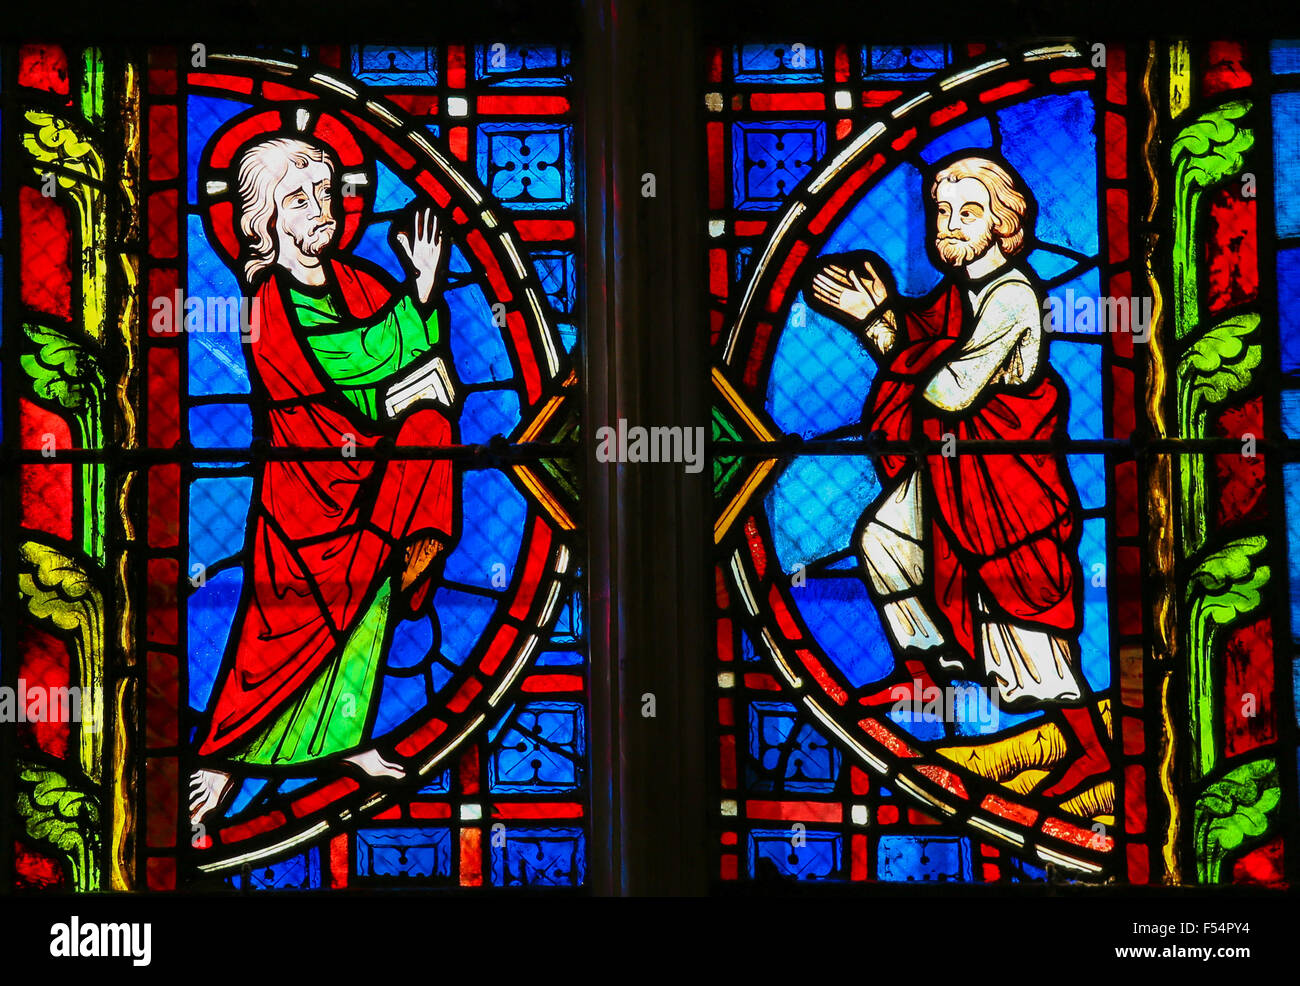 Stained glass window depicting Jesus and a Believer in the Cathedral of Tours, France. - Stock Image